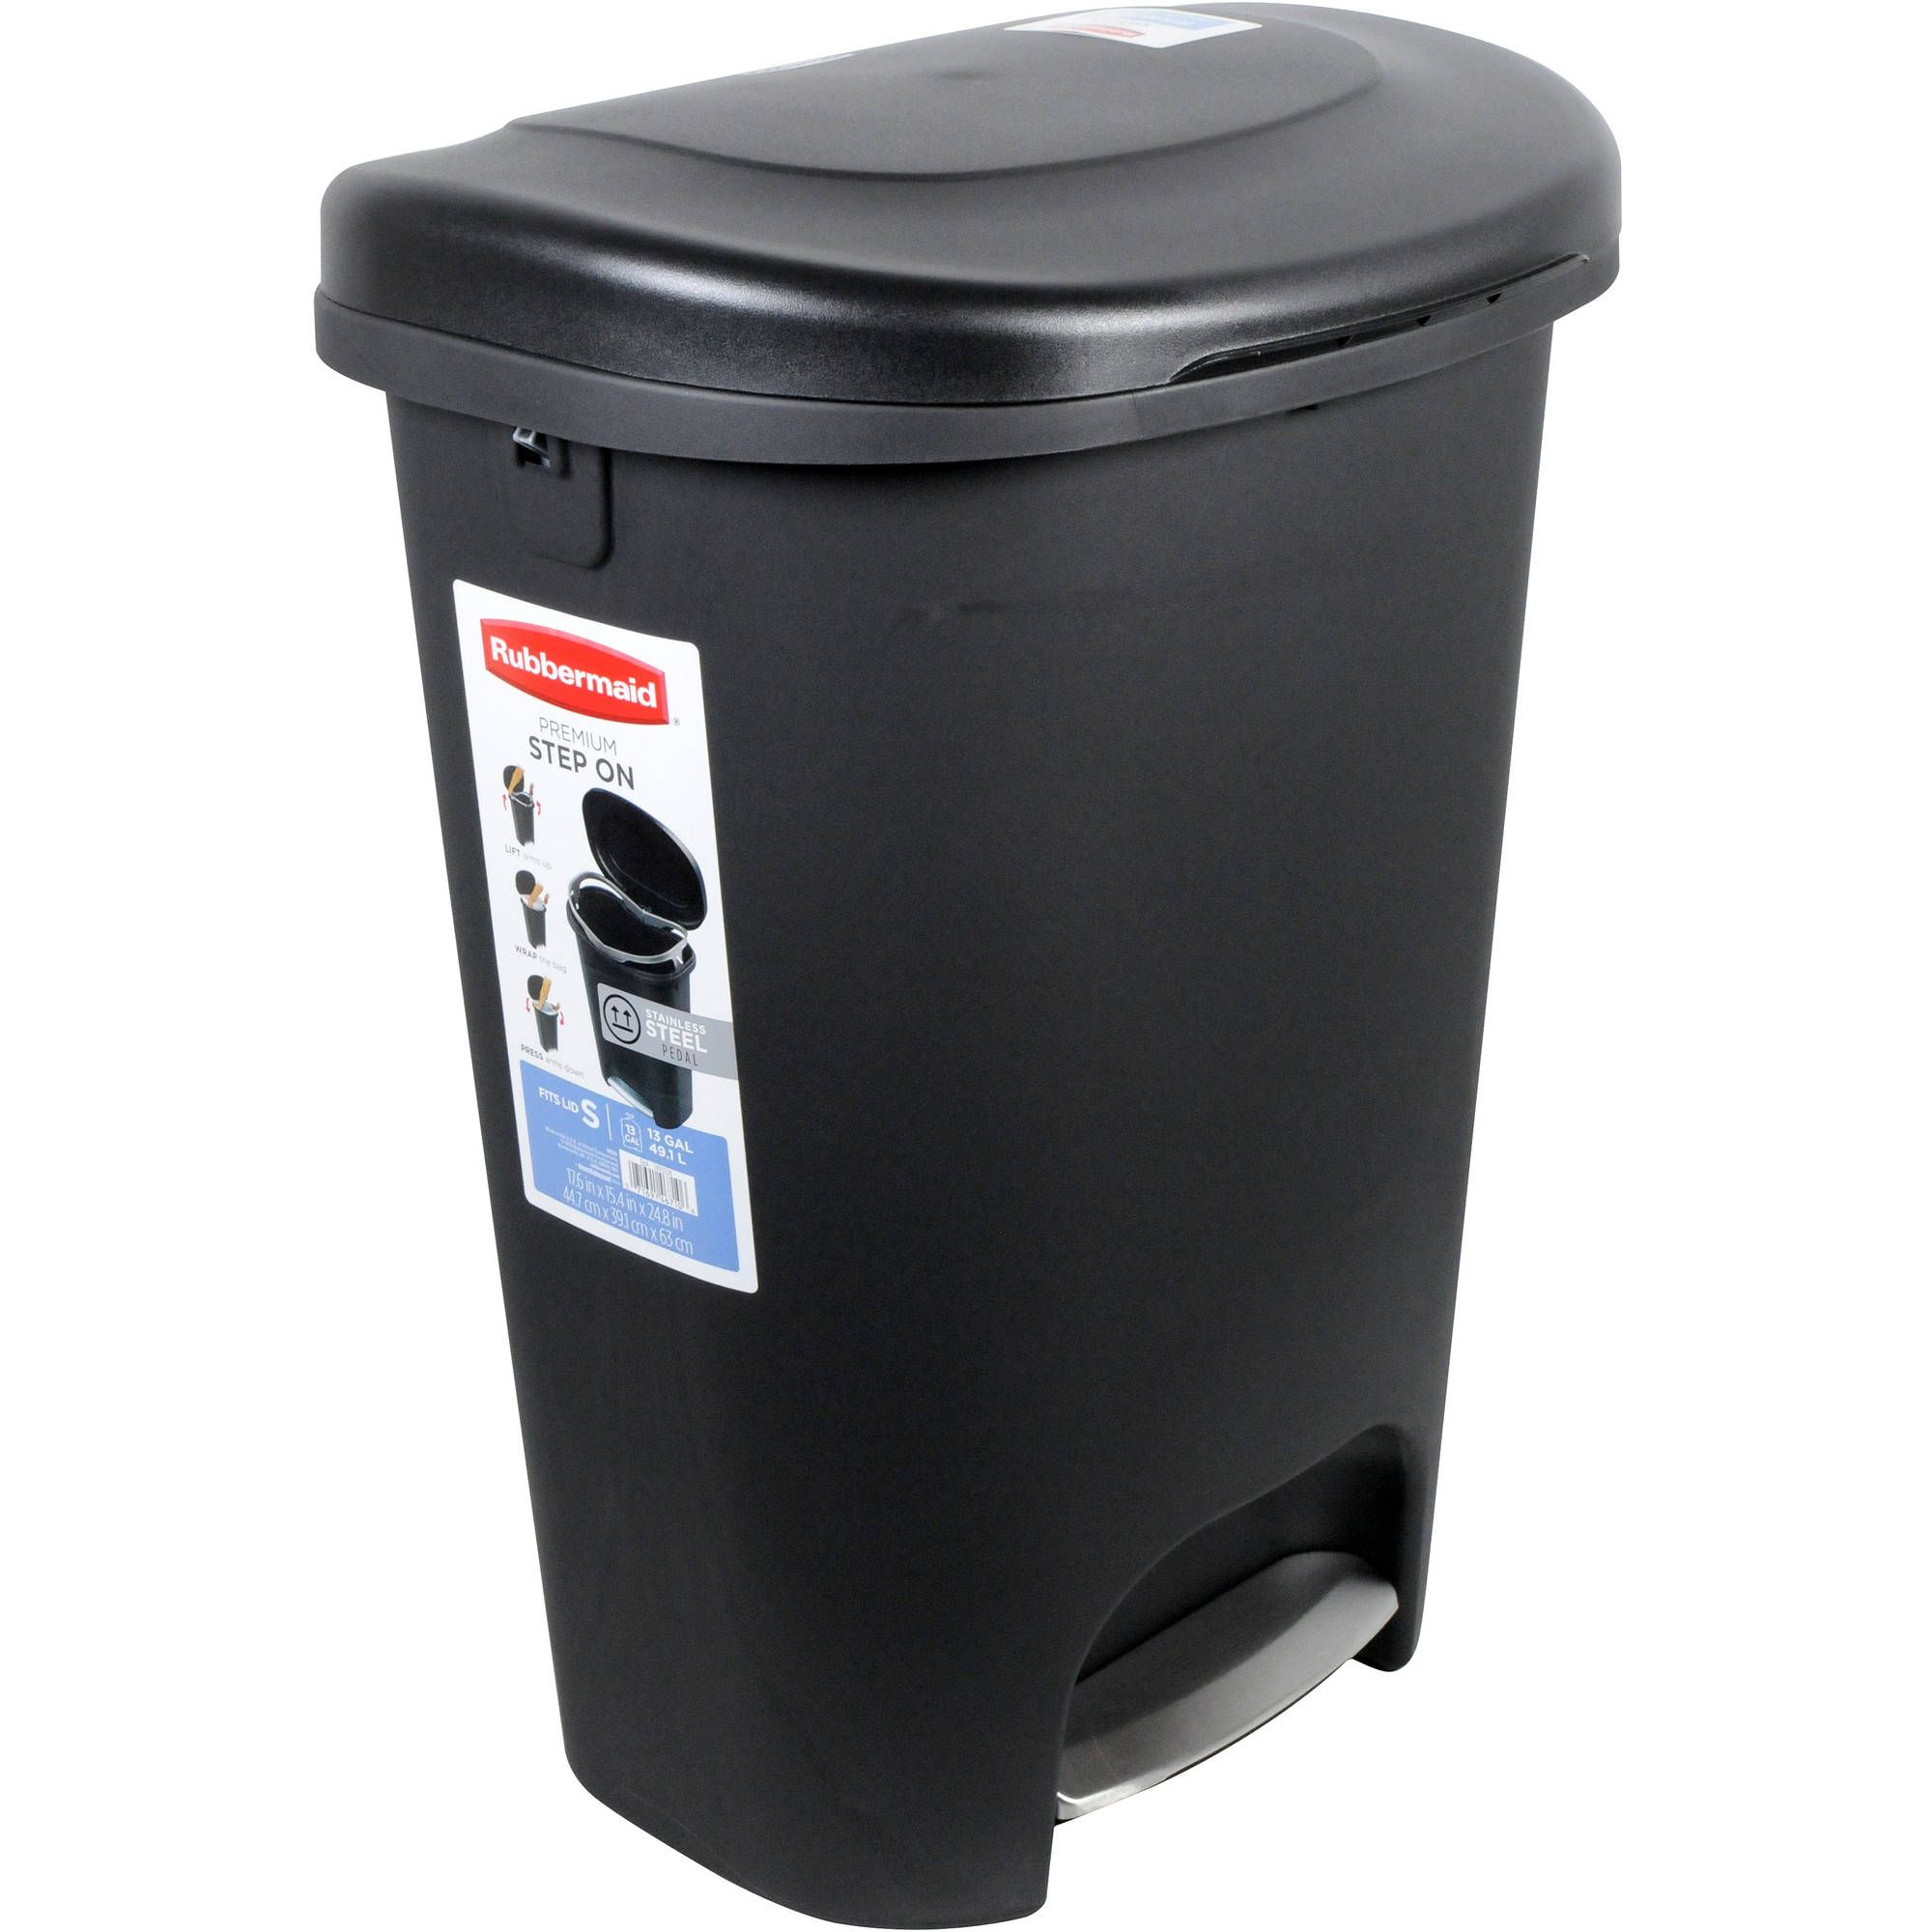 Rubbermaid Premium Step On Trash Can 13 Gal Black With Metal Accent Walmart Com Kitchen Trash Cans Trash Can Waste Basket